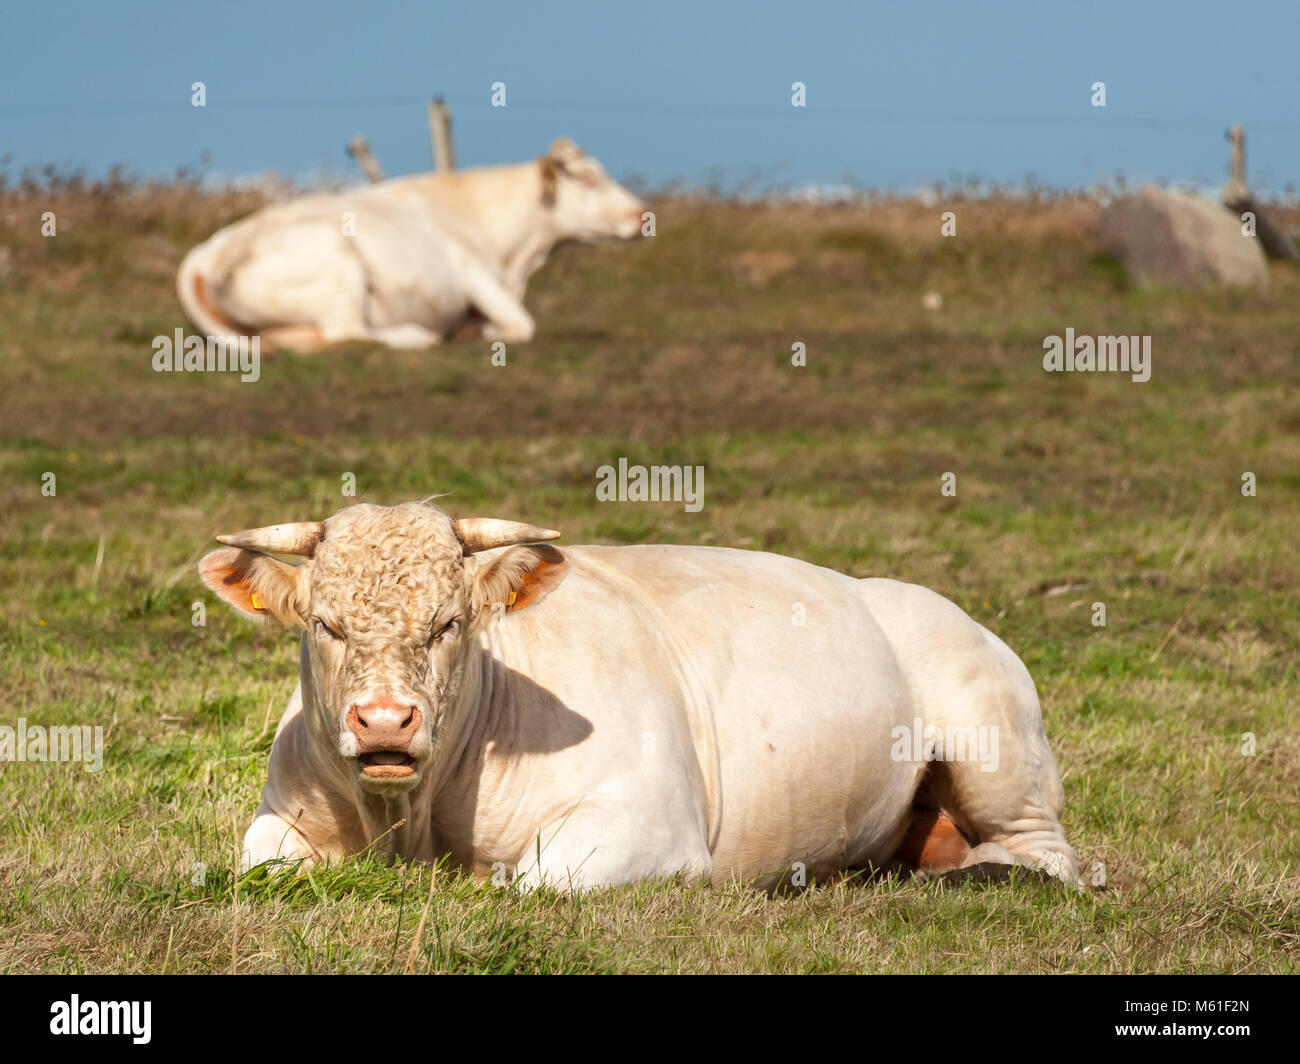 A white ruminating cow laying on a meadow, Normandy France - Stock Image